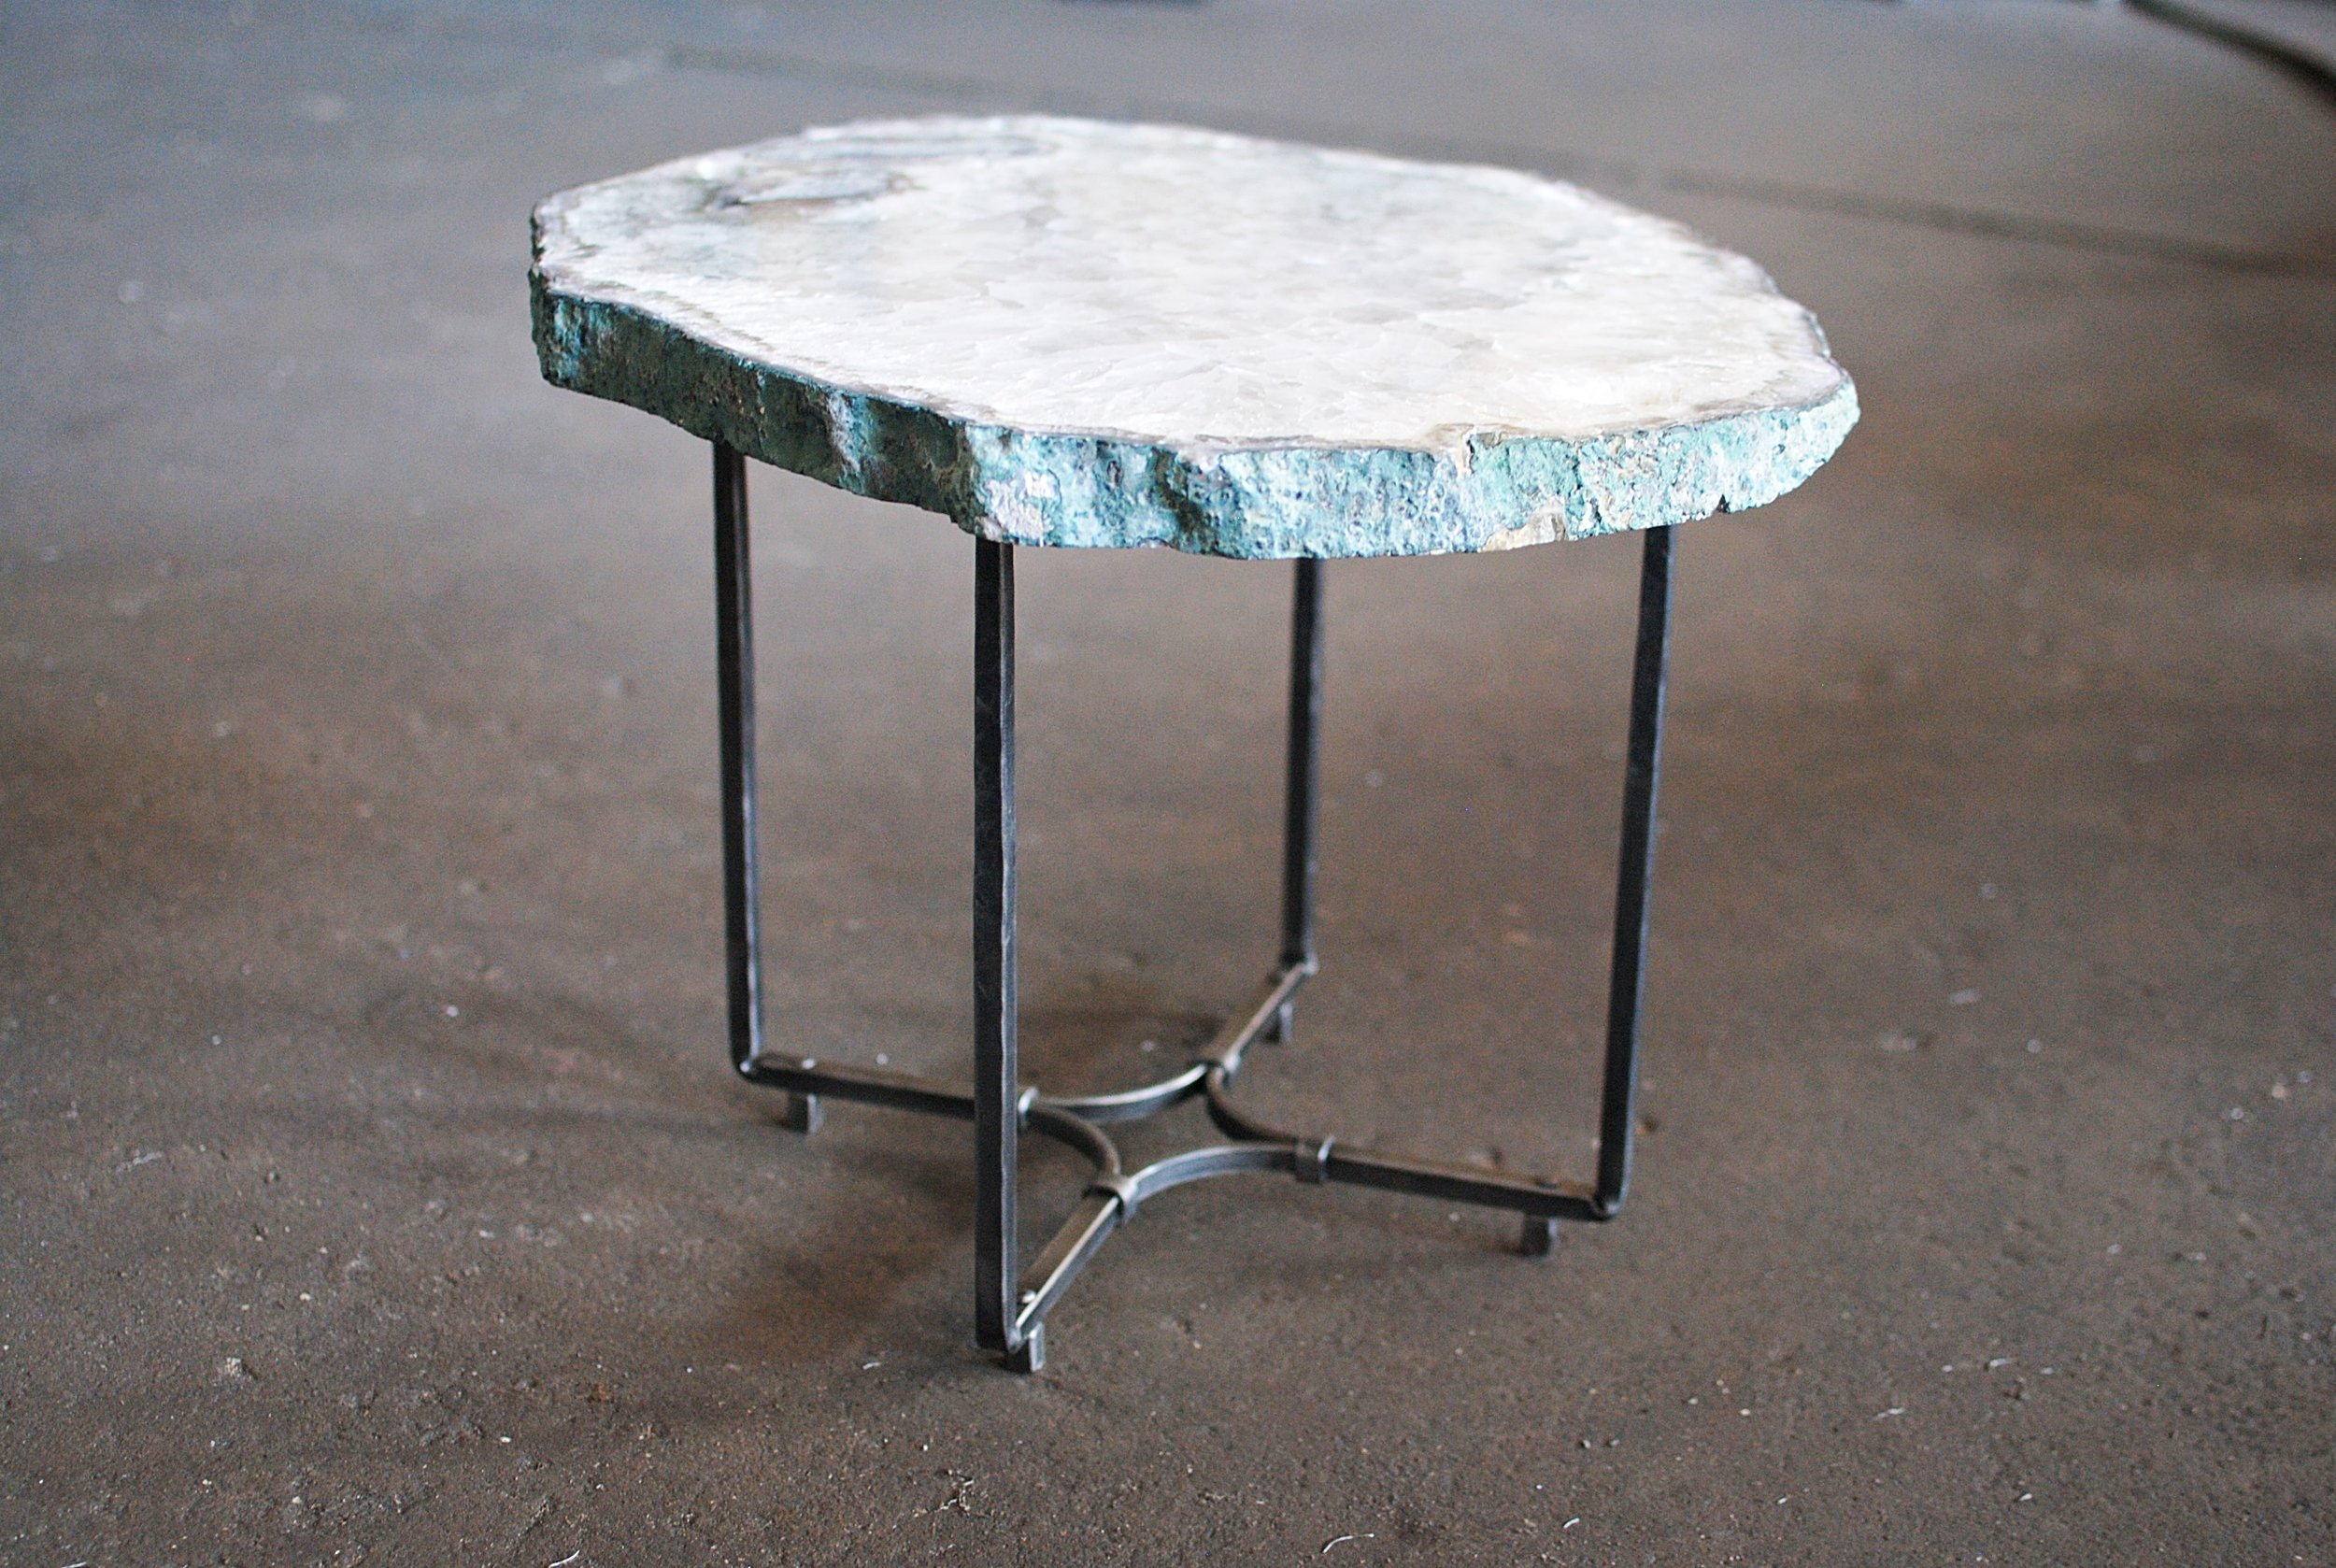 Forged table base with stone top